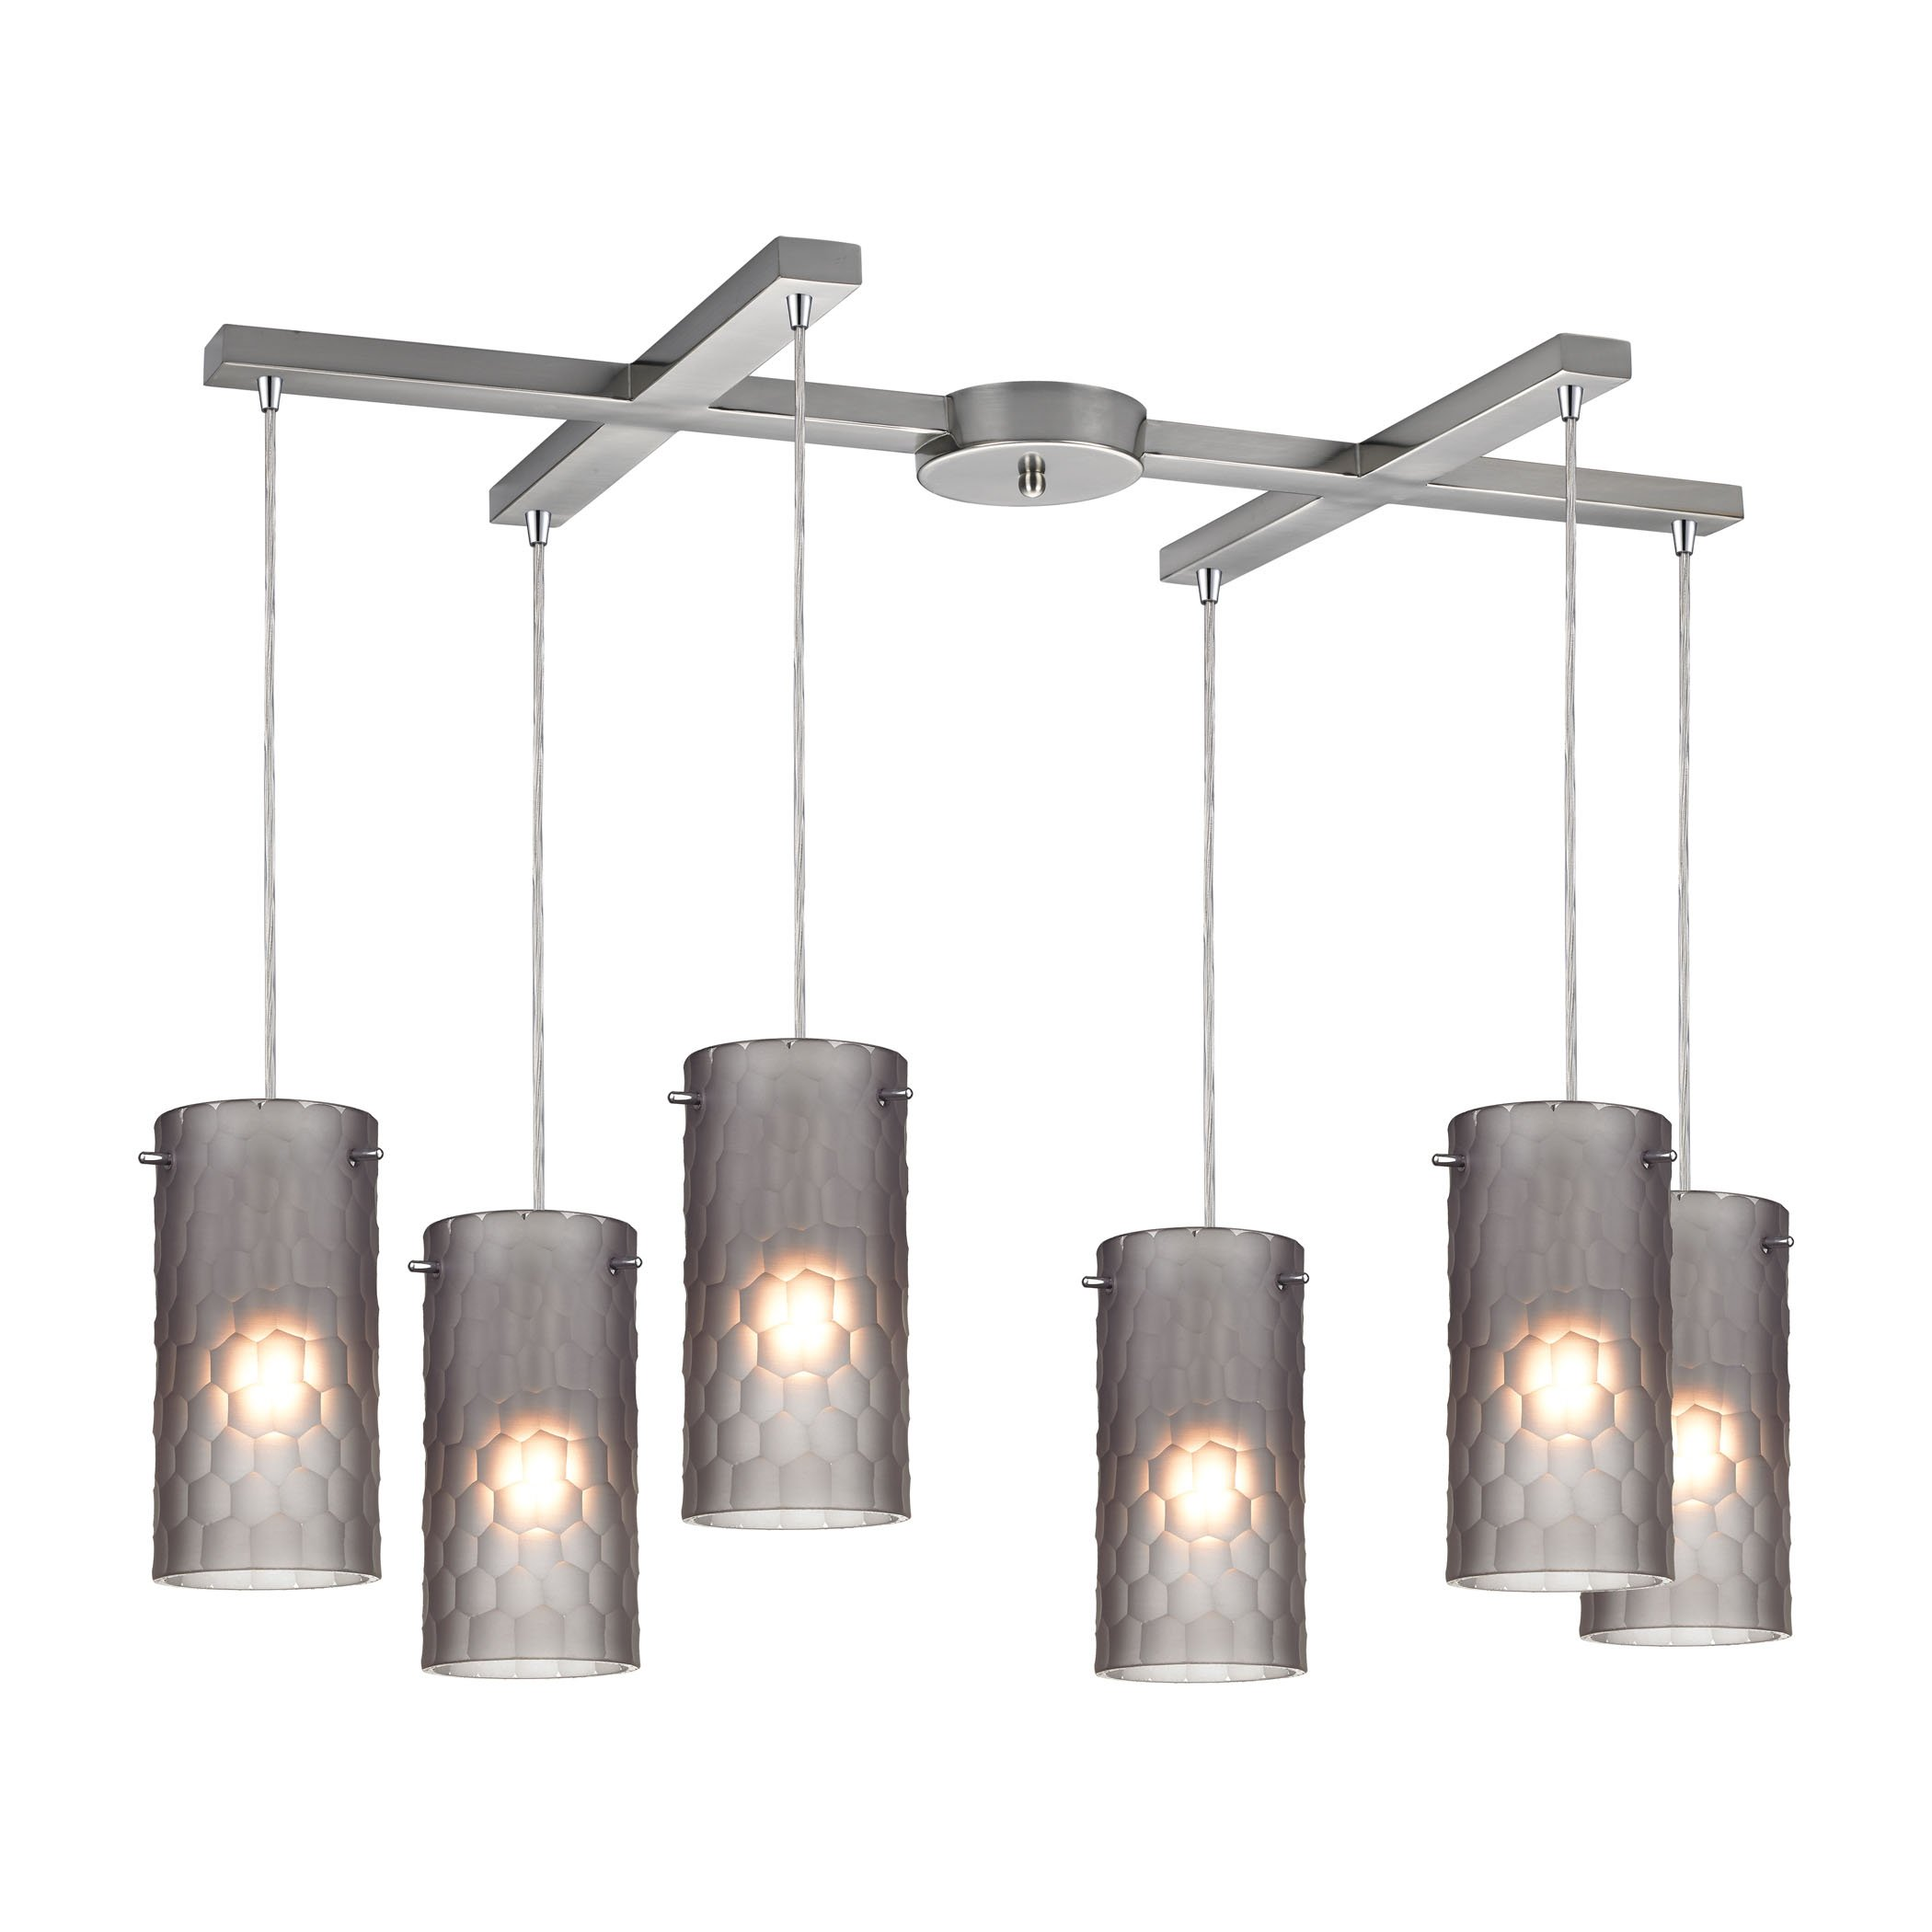 Elk lighting synthesis light pendant in satin nickel and frosted